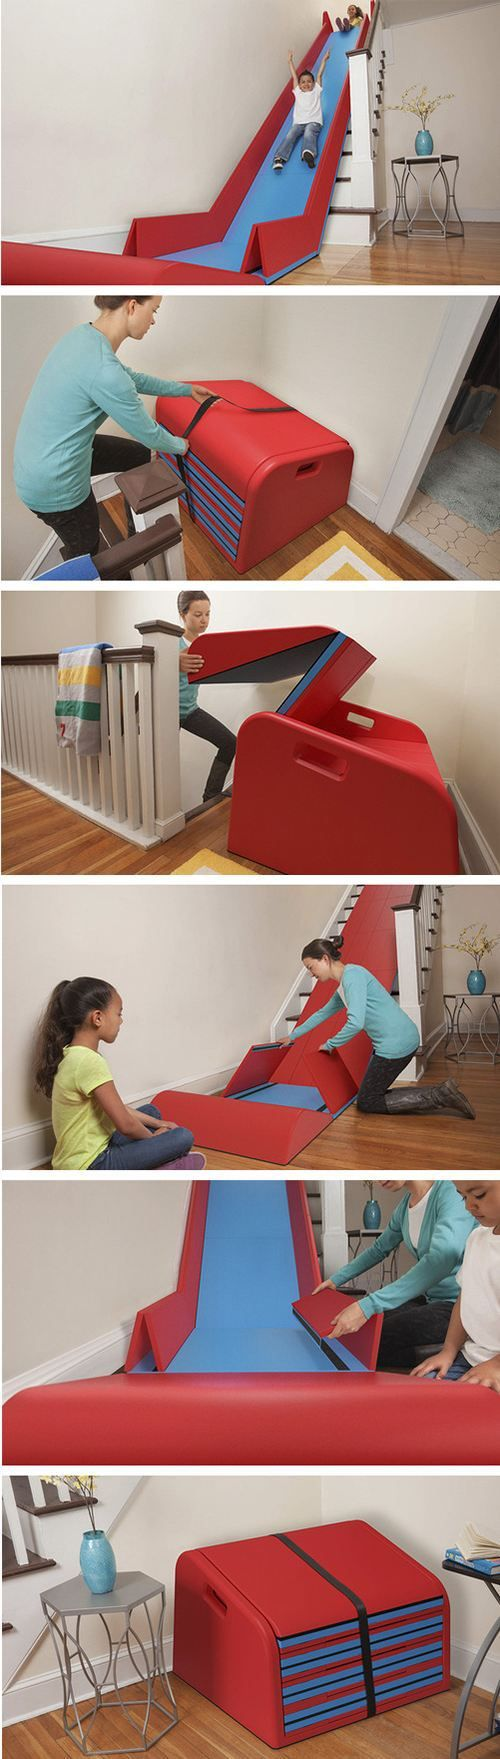 This is AWESOME! Why did I not have this as a child?? Haha